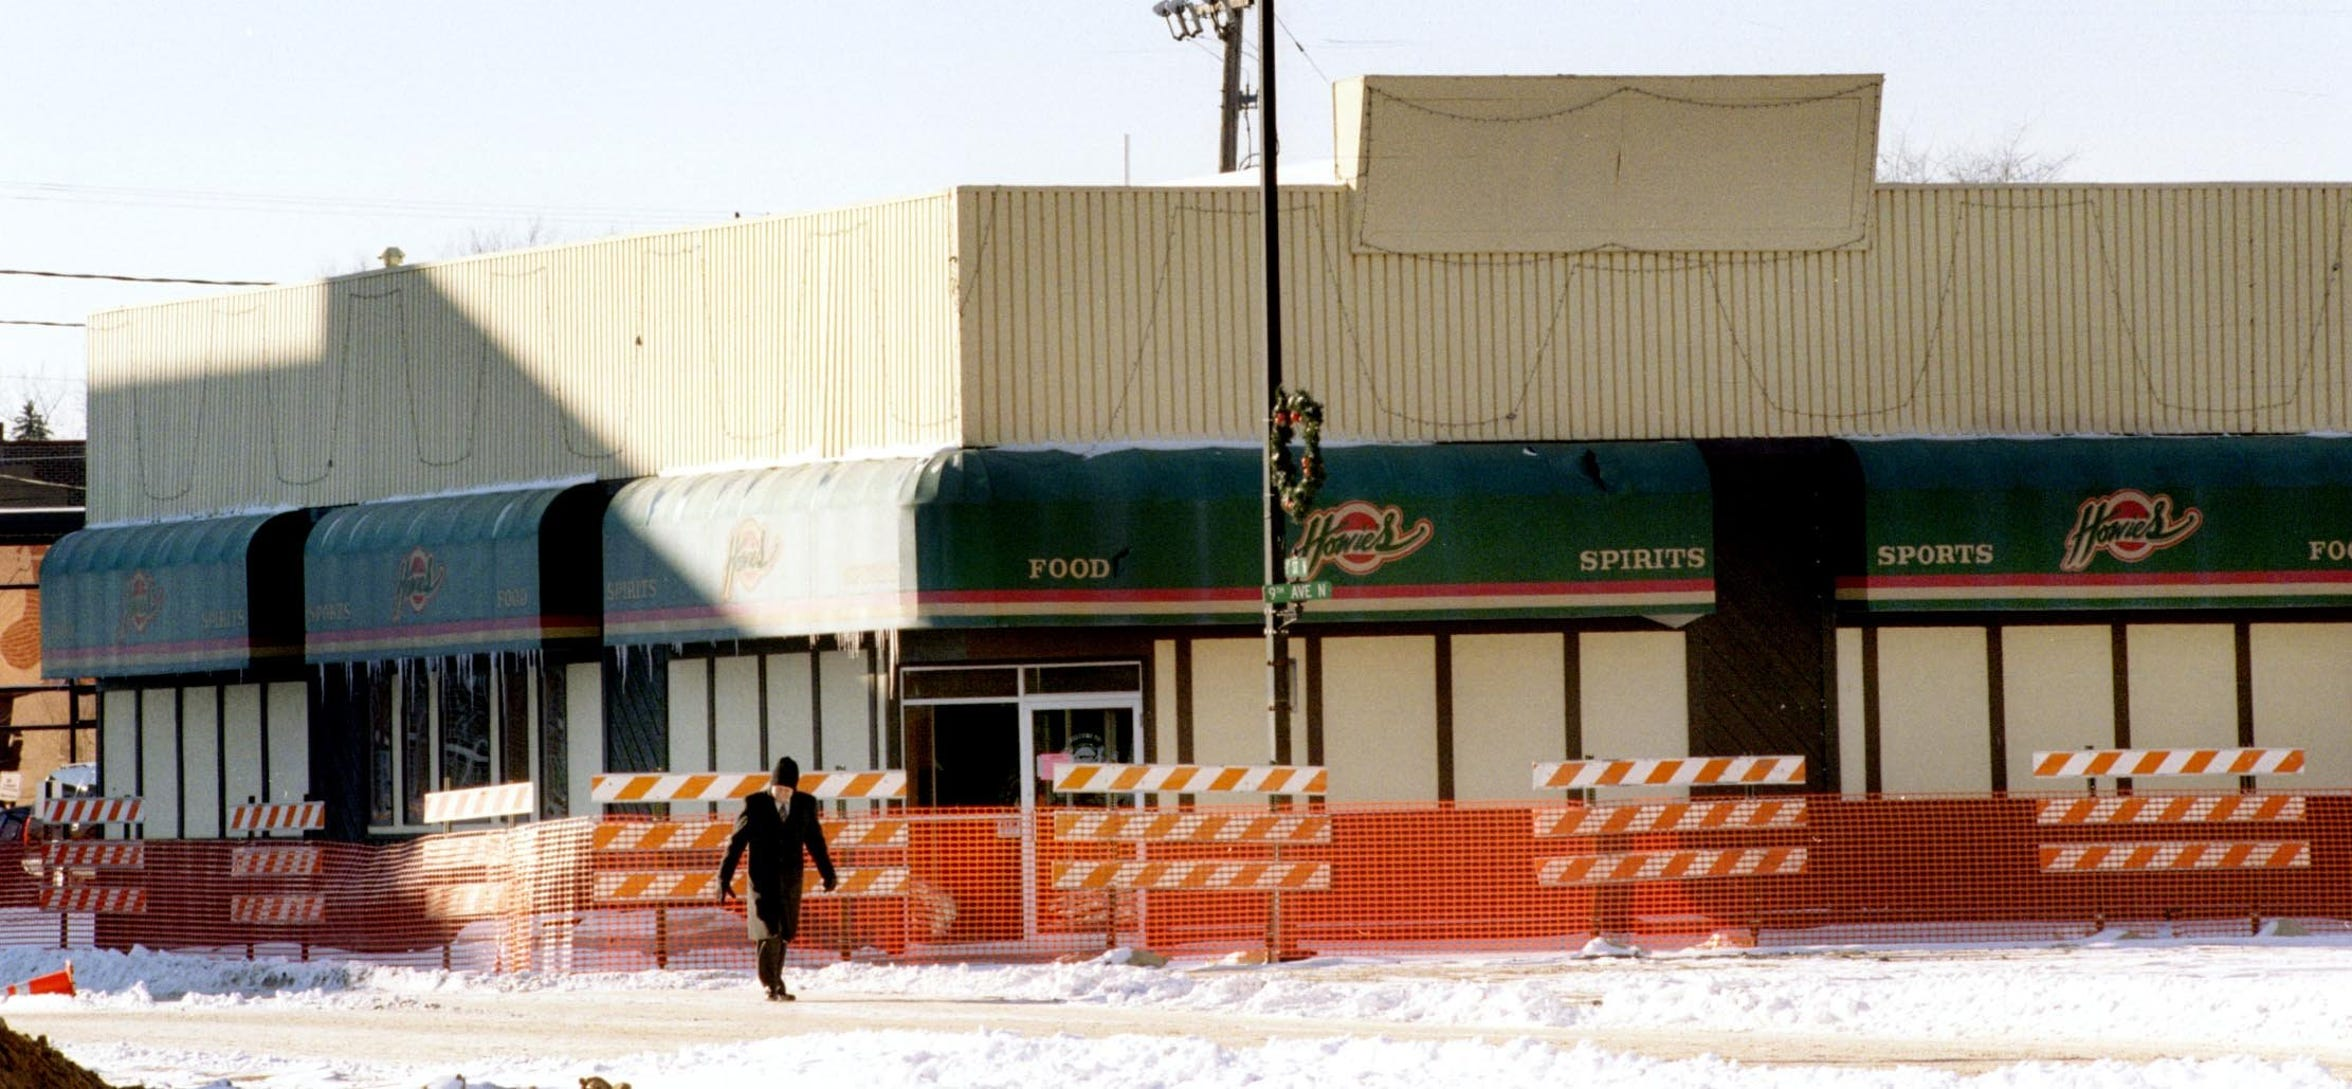 A pedestrian wandered through the barricaded area surrounding Howie's Bar on Dec. 14, 1998 in downtown St. Cloud.